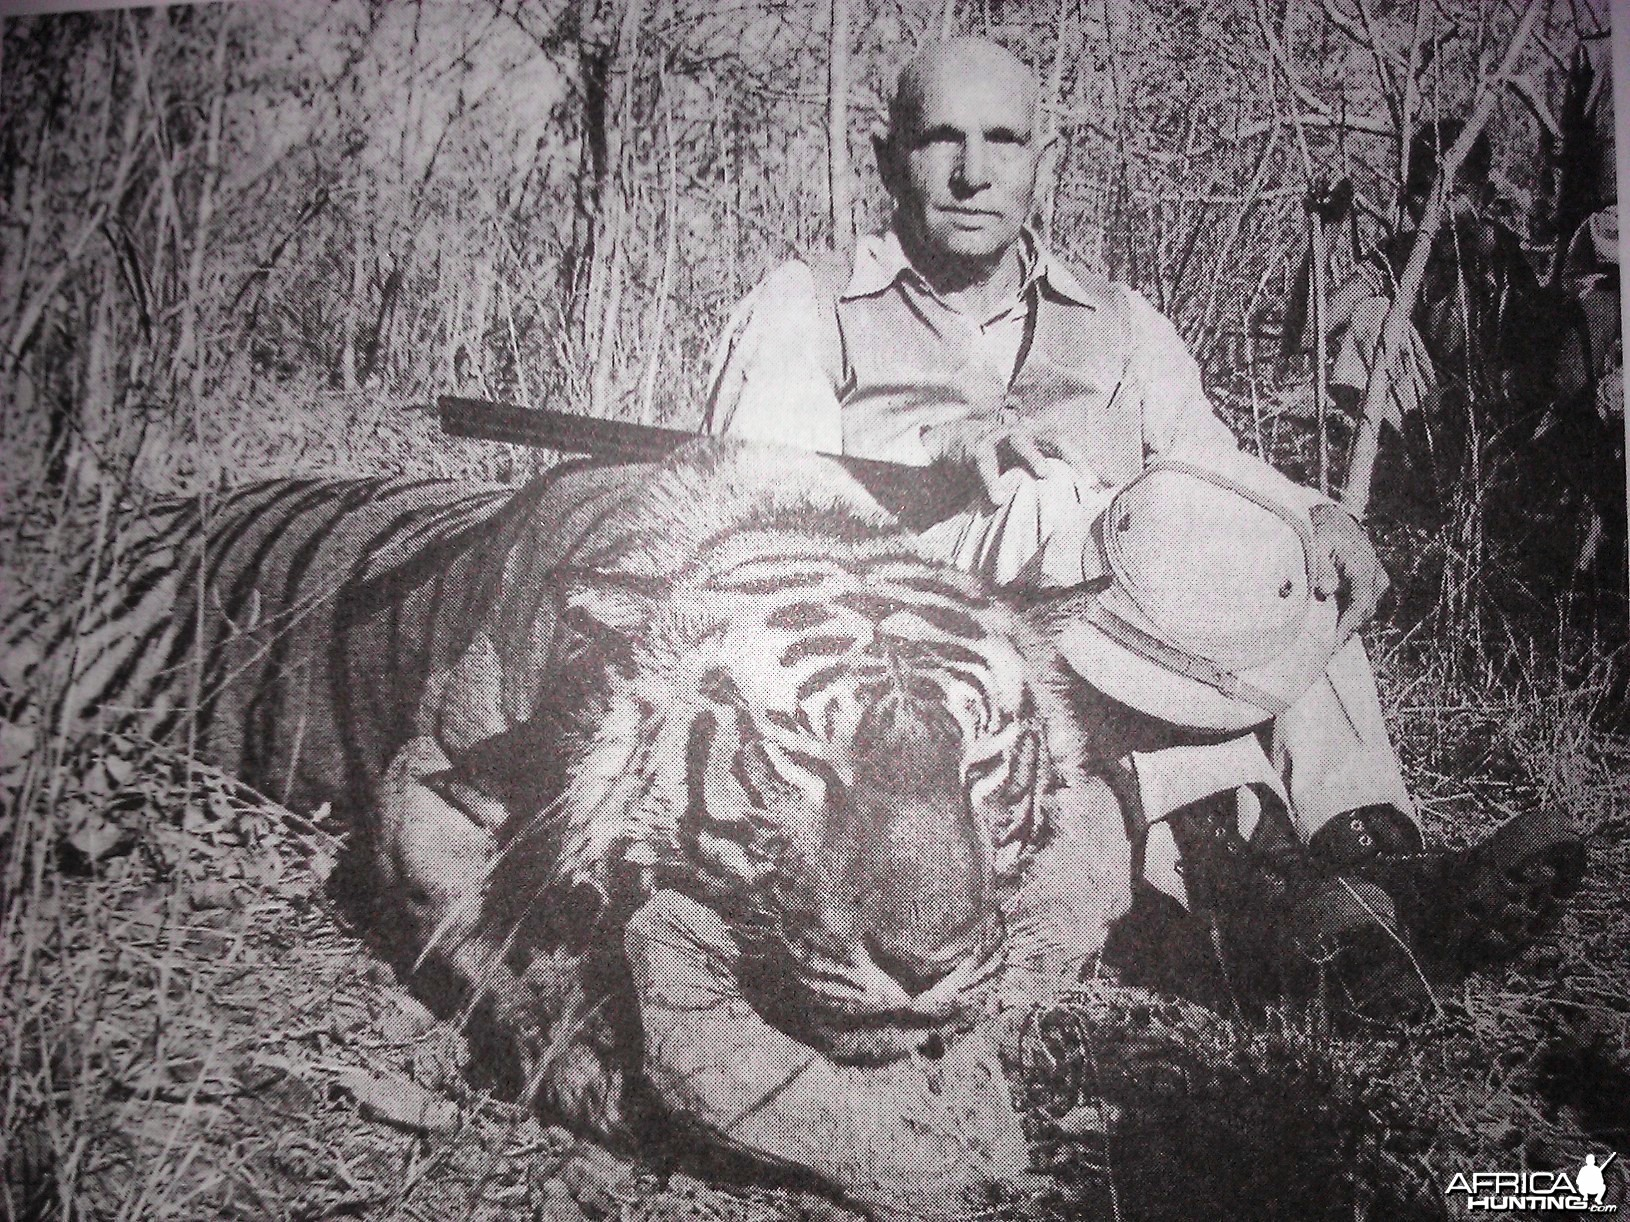 Tiger hunting picture from the British Raj Era